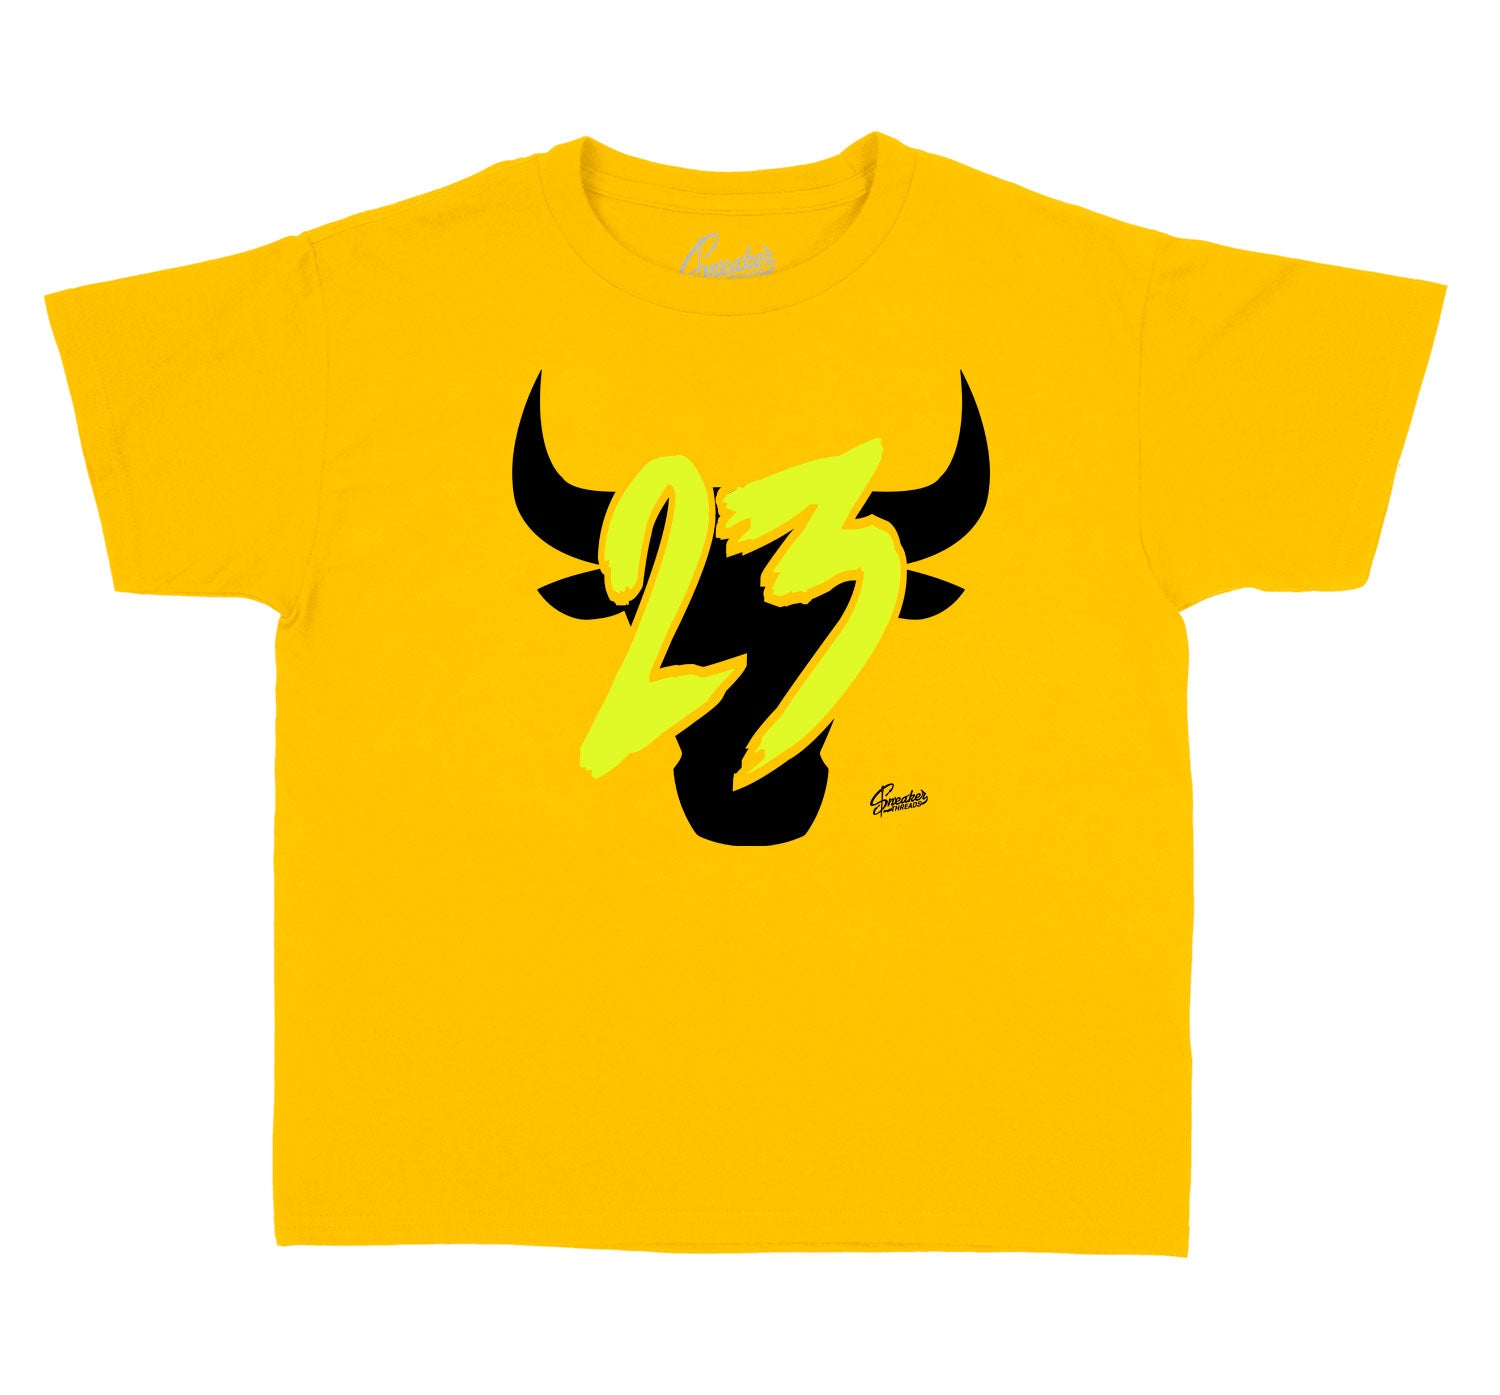 kids t shirt collection to go with Jordan 1 volt gold sneakers